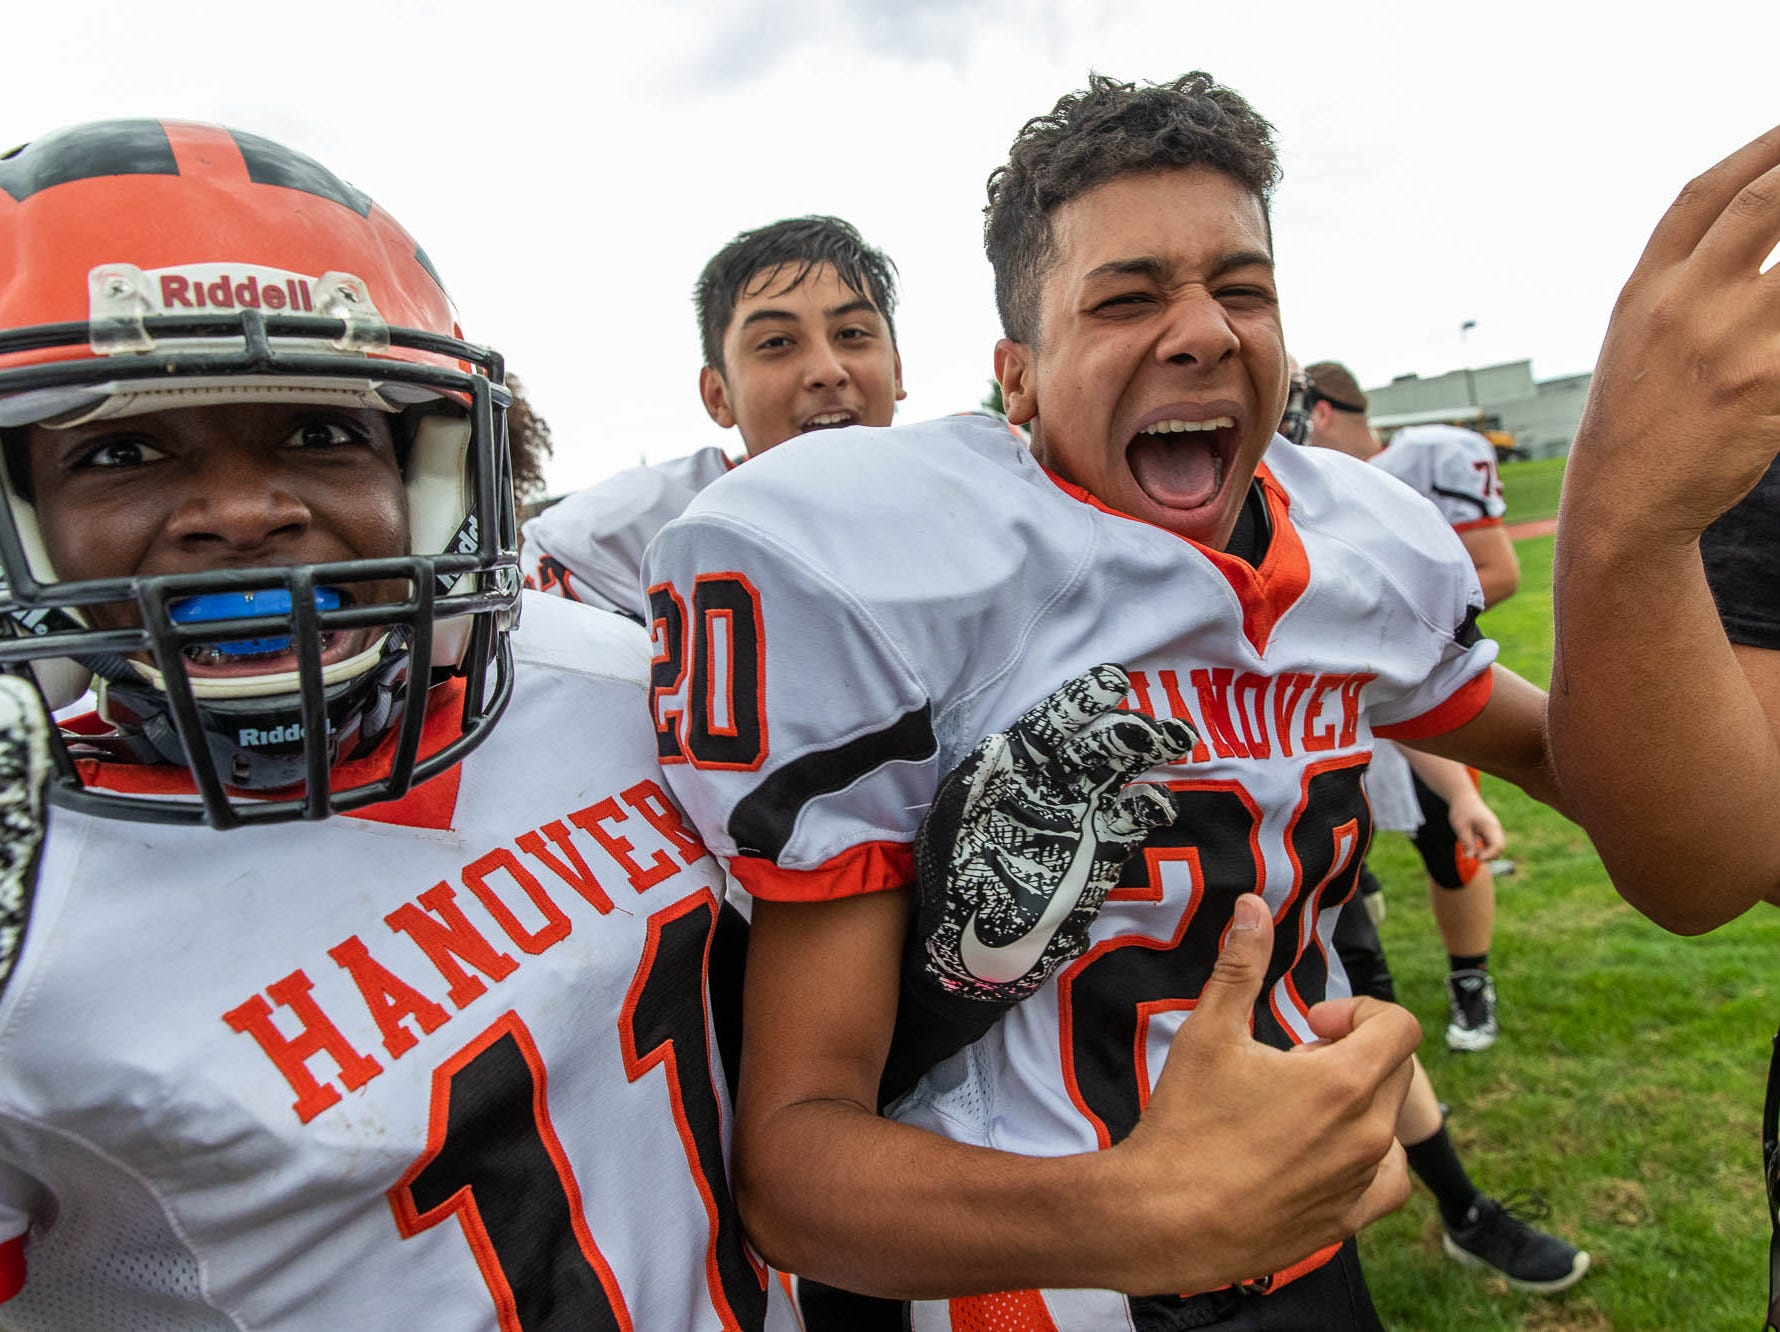 Hanover's Dominic Taylor (20) celebrates his team's win against York Tech, Saturday, Sept. 22, 2018, at the York County School of Technology in York Township. The Nighthawks defeated the York Tech Spartans 44-12, giving Hanover their first win of the season.